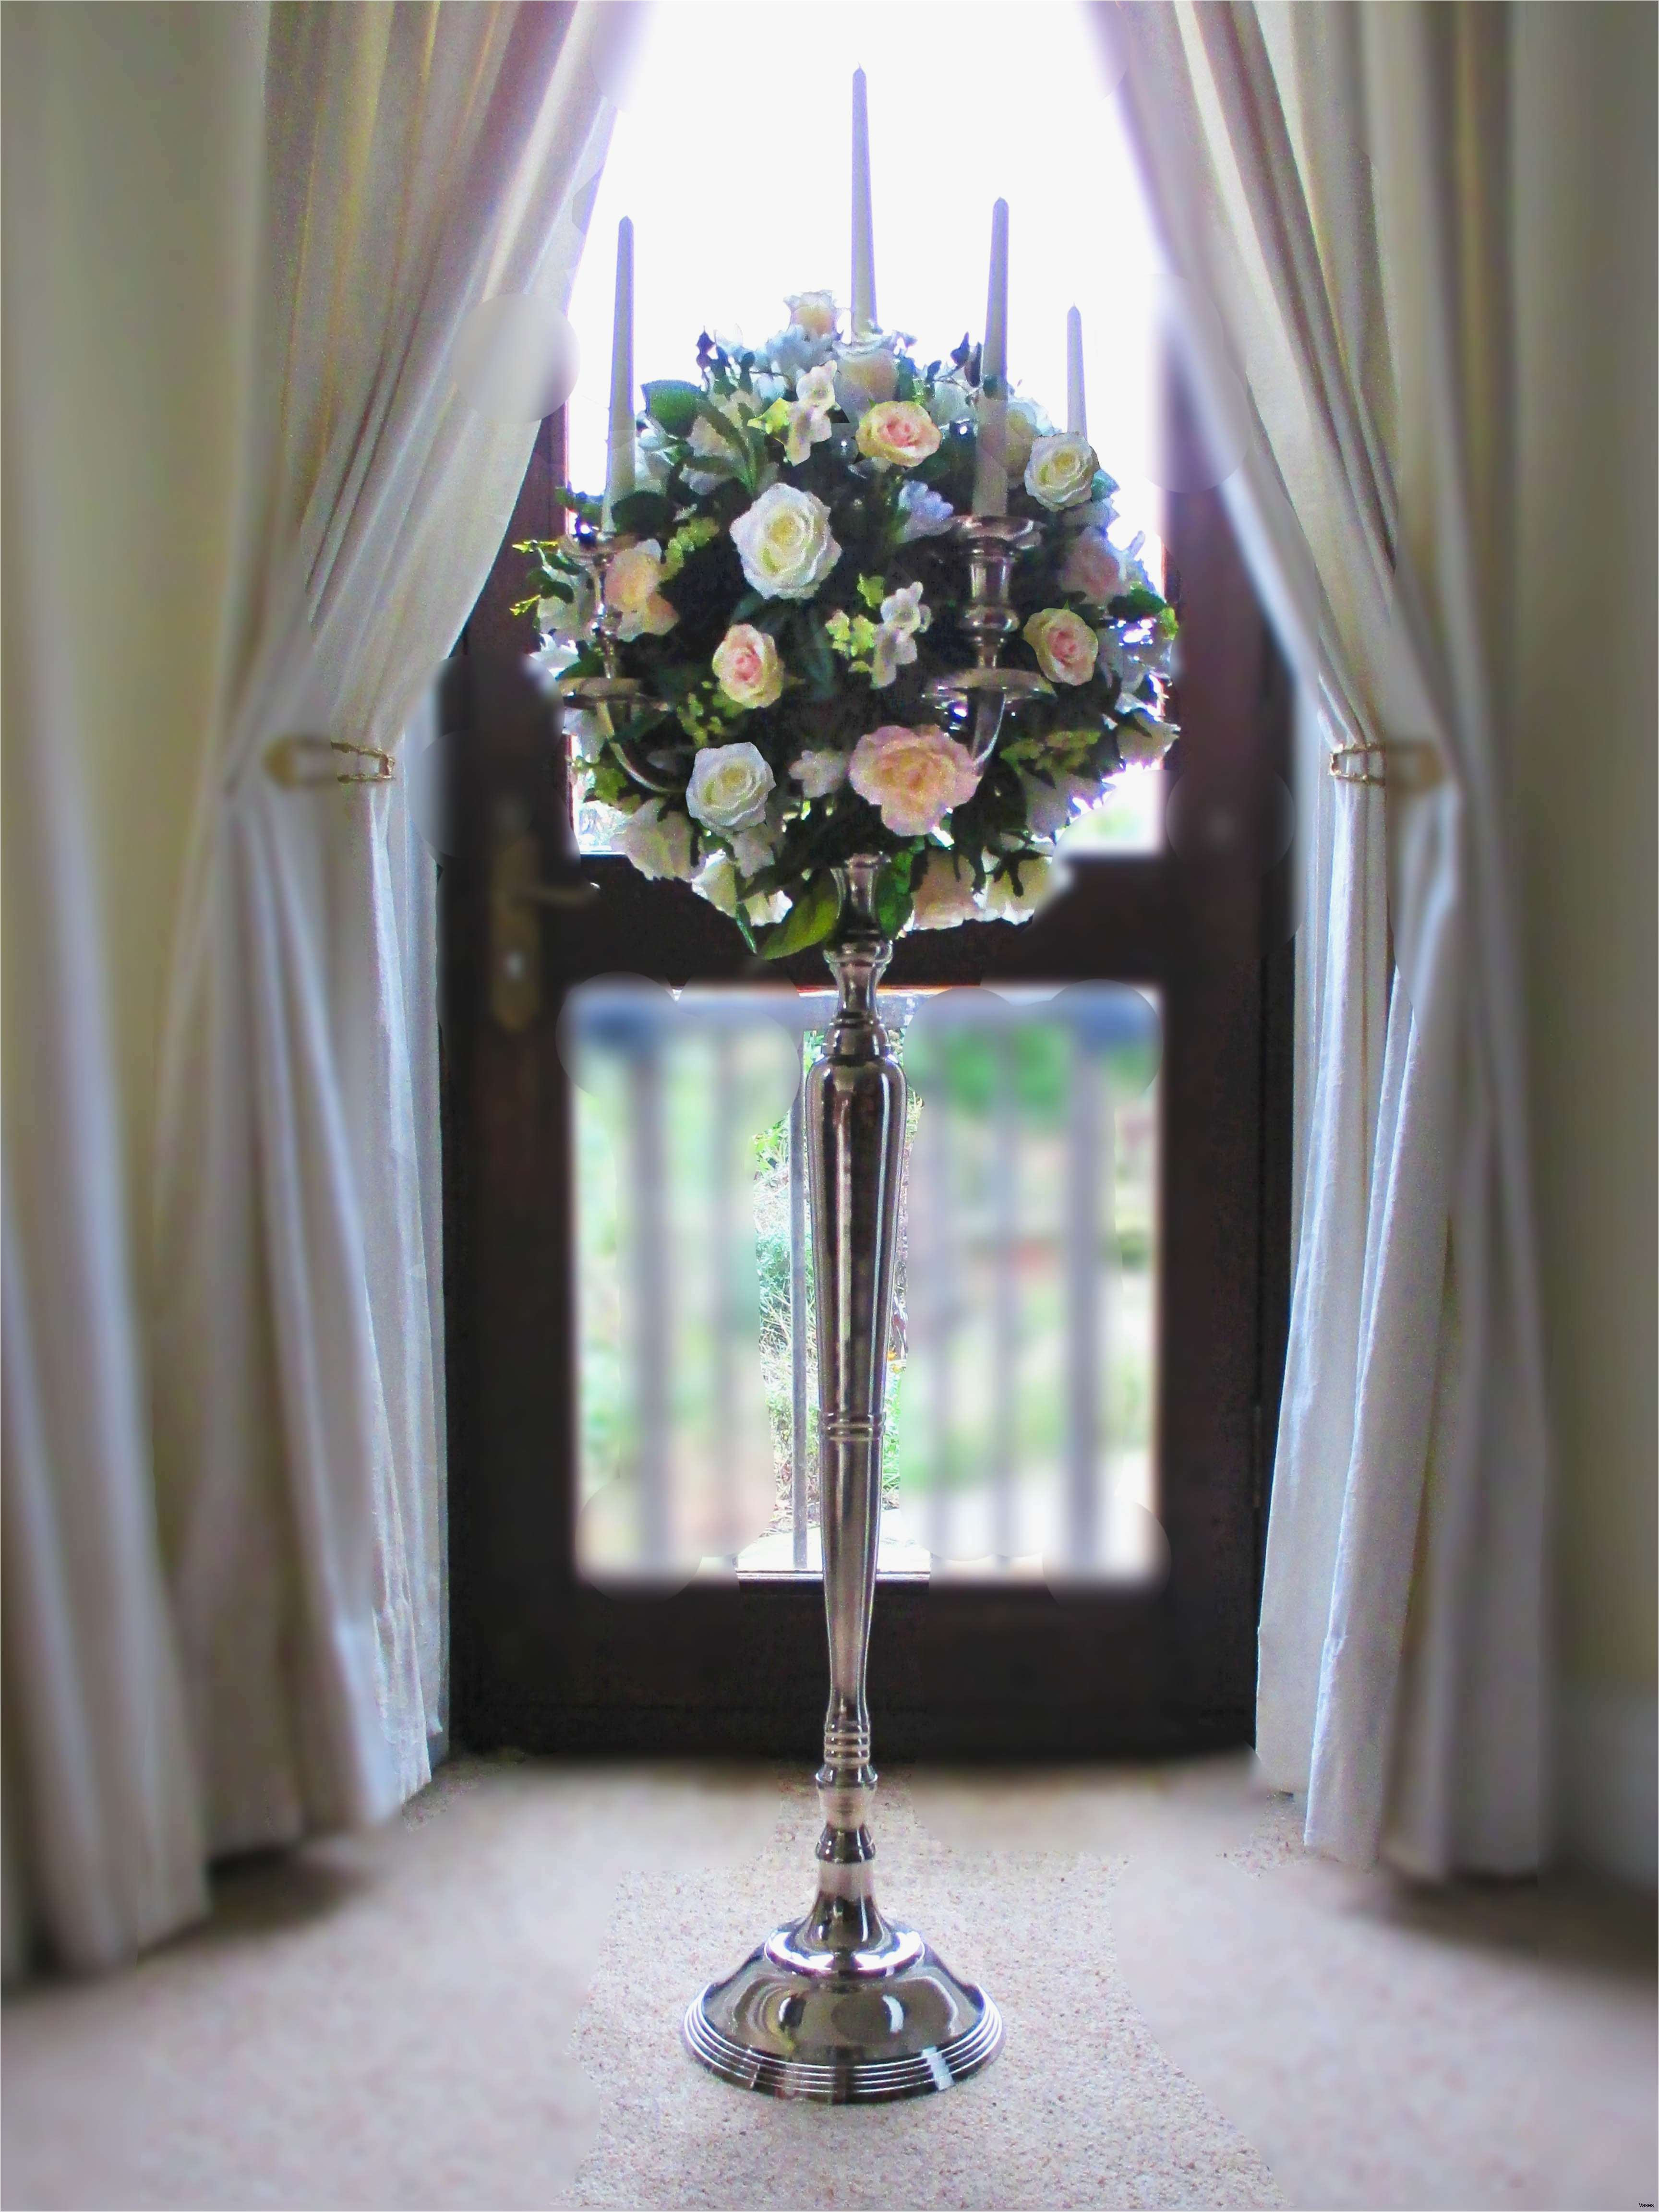 tall vases for wedding aisle of autumn wedding free wedding fall wedding centerpieces awesome tall inside autumn wedding gallery cheap wedding bouquets packages 5397h vases silver vase leeds i 0d new